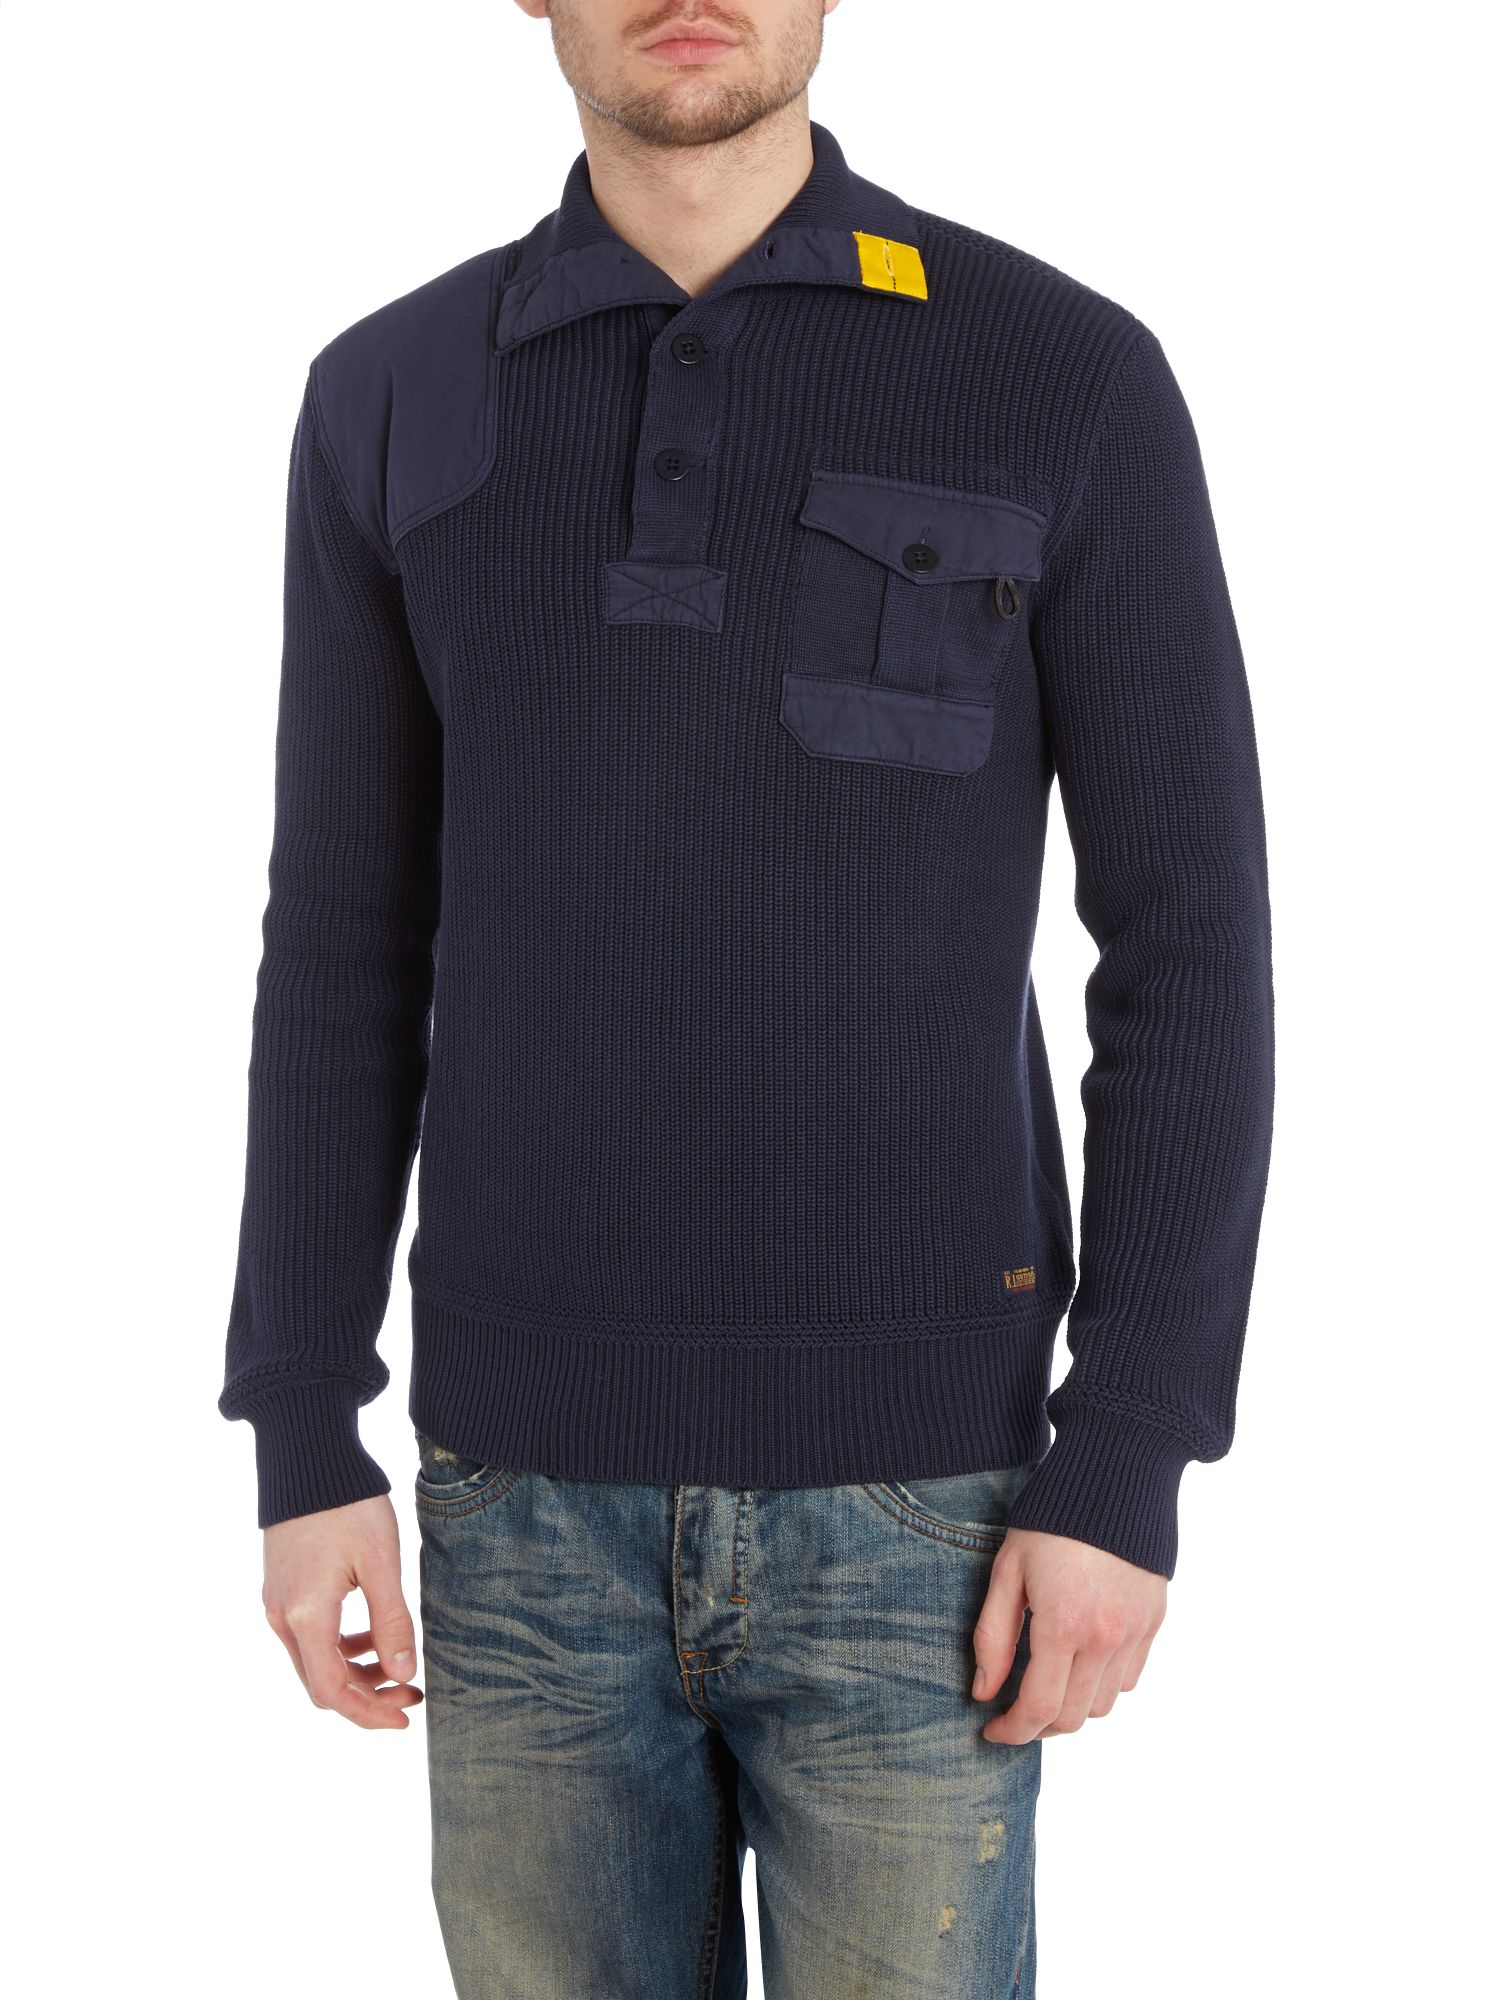 Heavy knit button mock pocket patch jumper